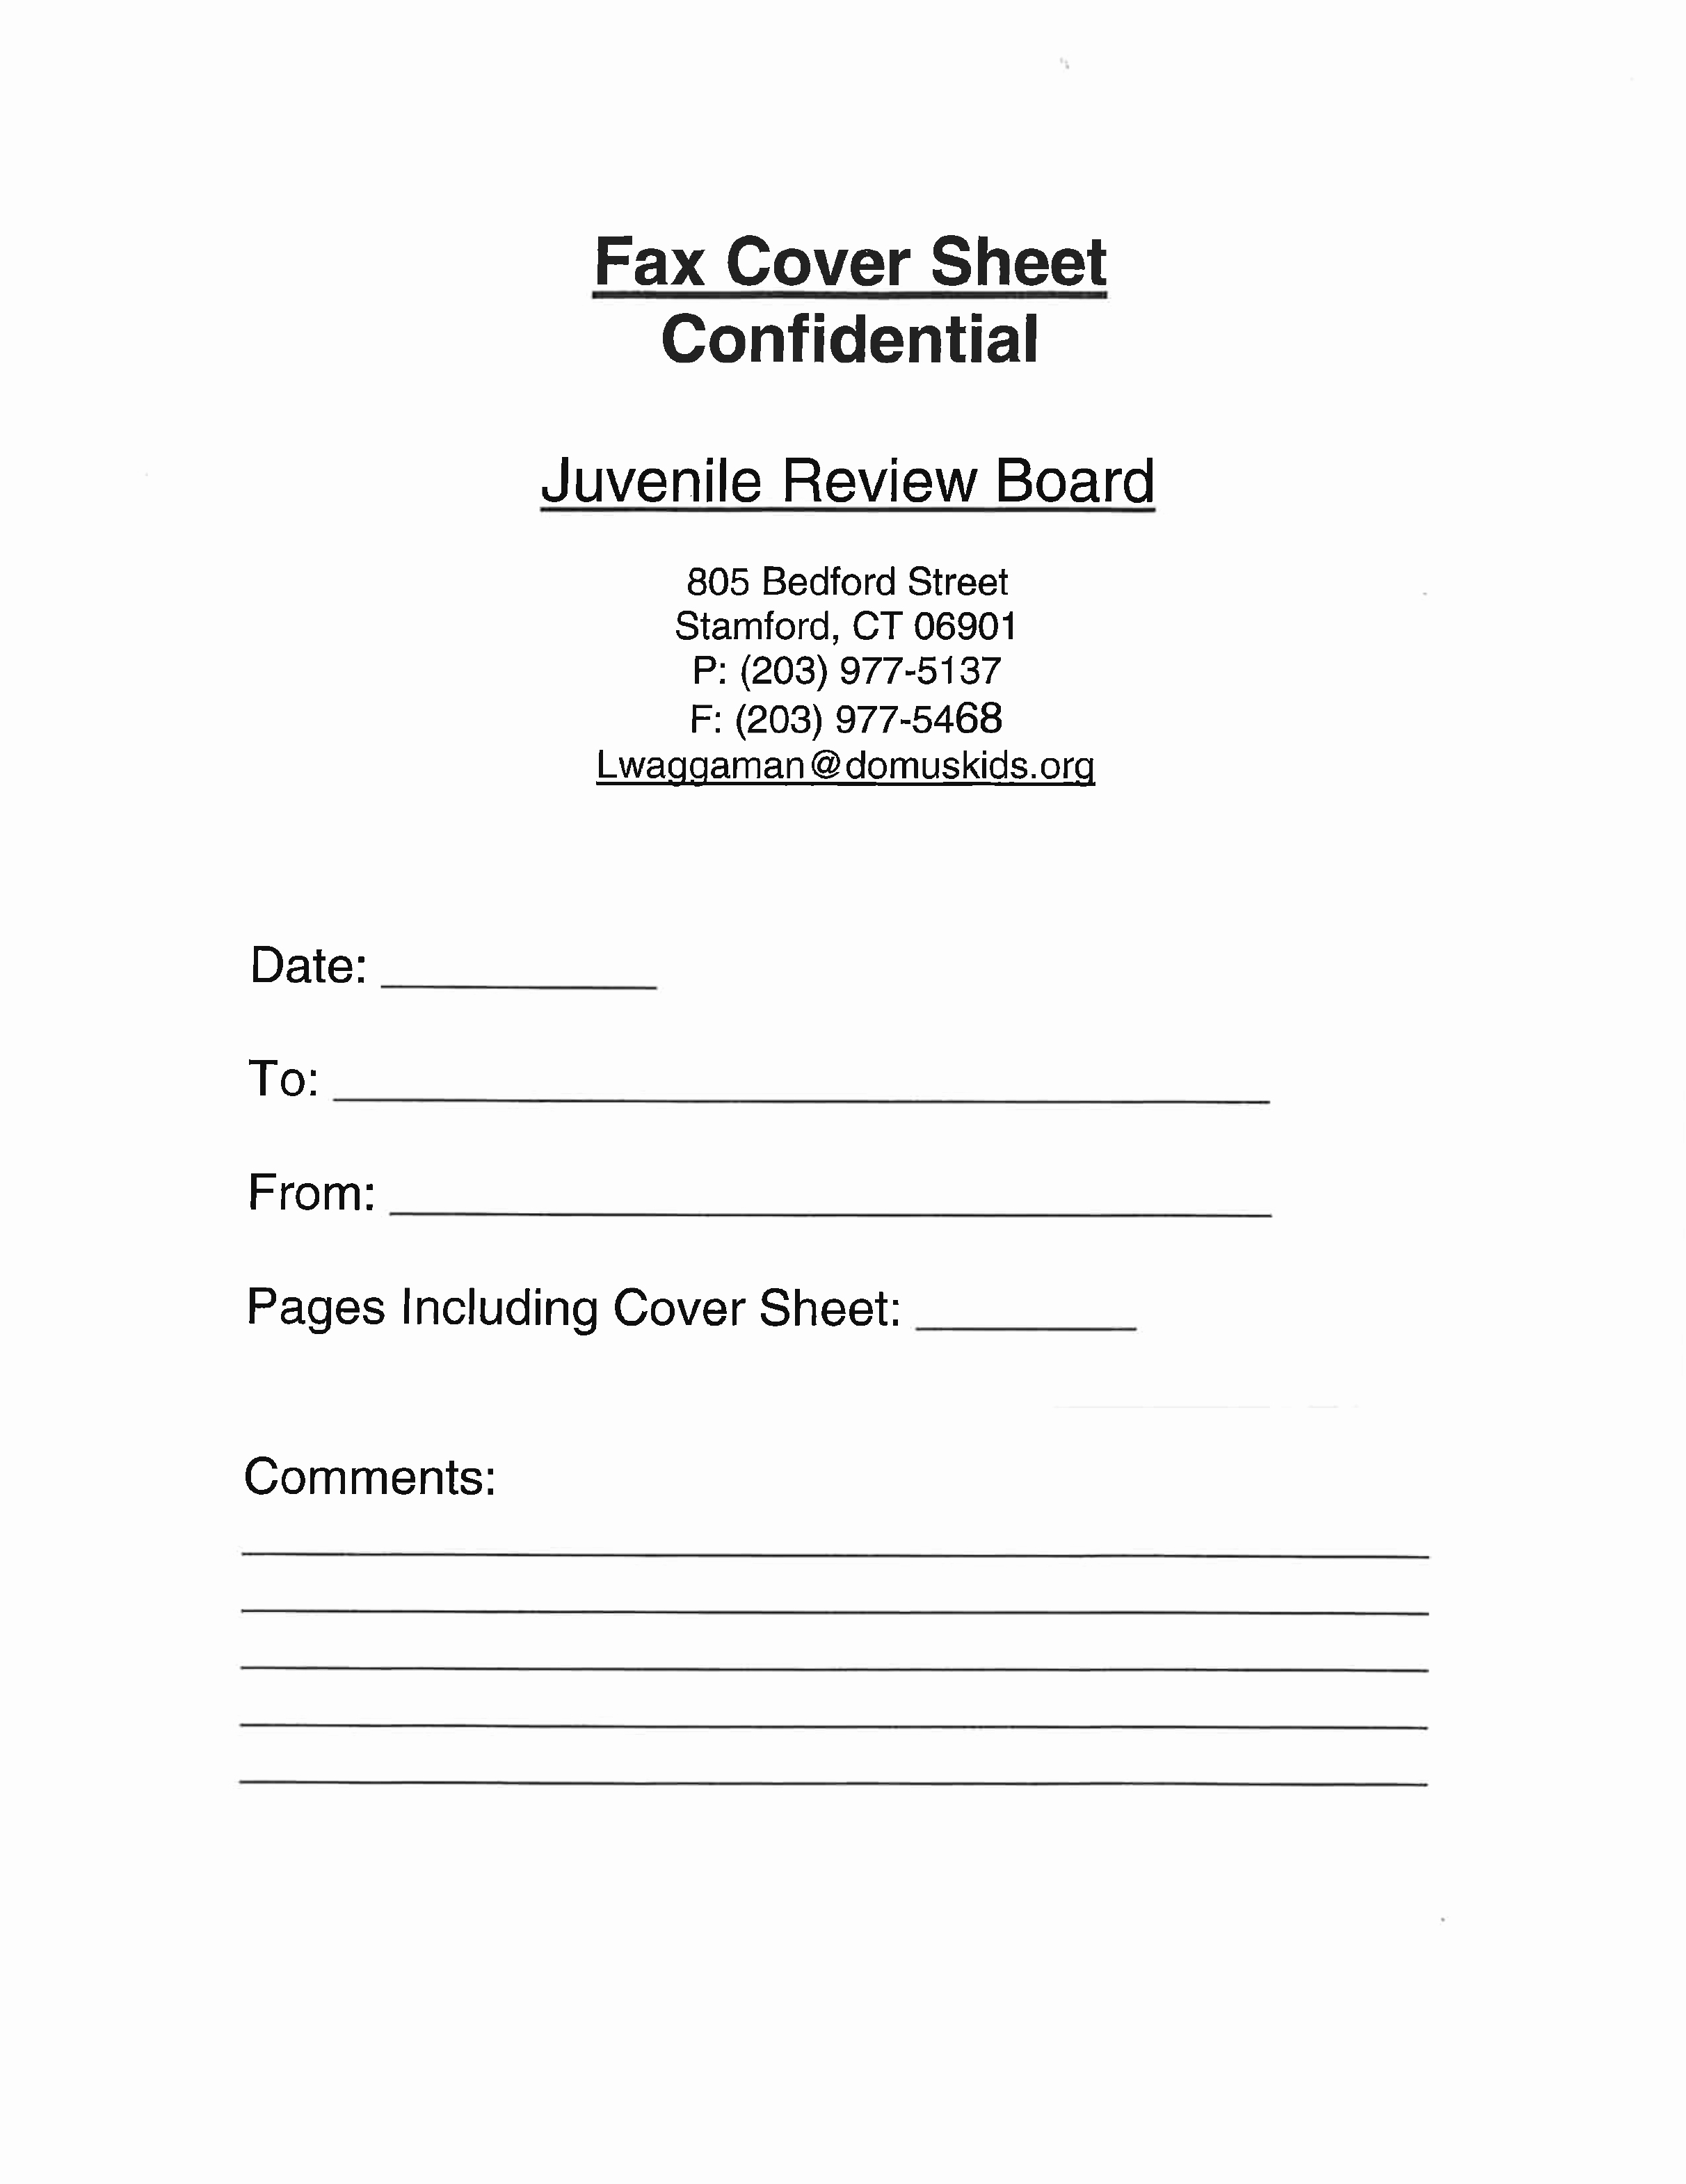 Pdf Fax Cover Sheet Fillable Luxury Fax Cover Sheet Confidential Free Download